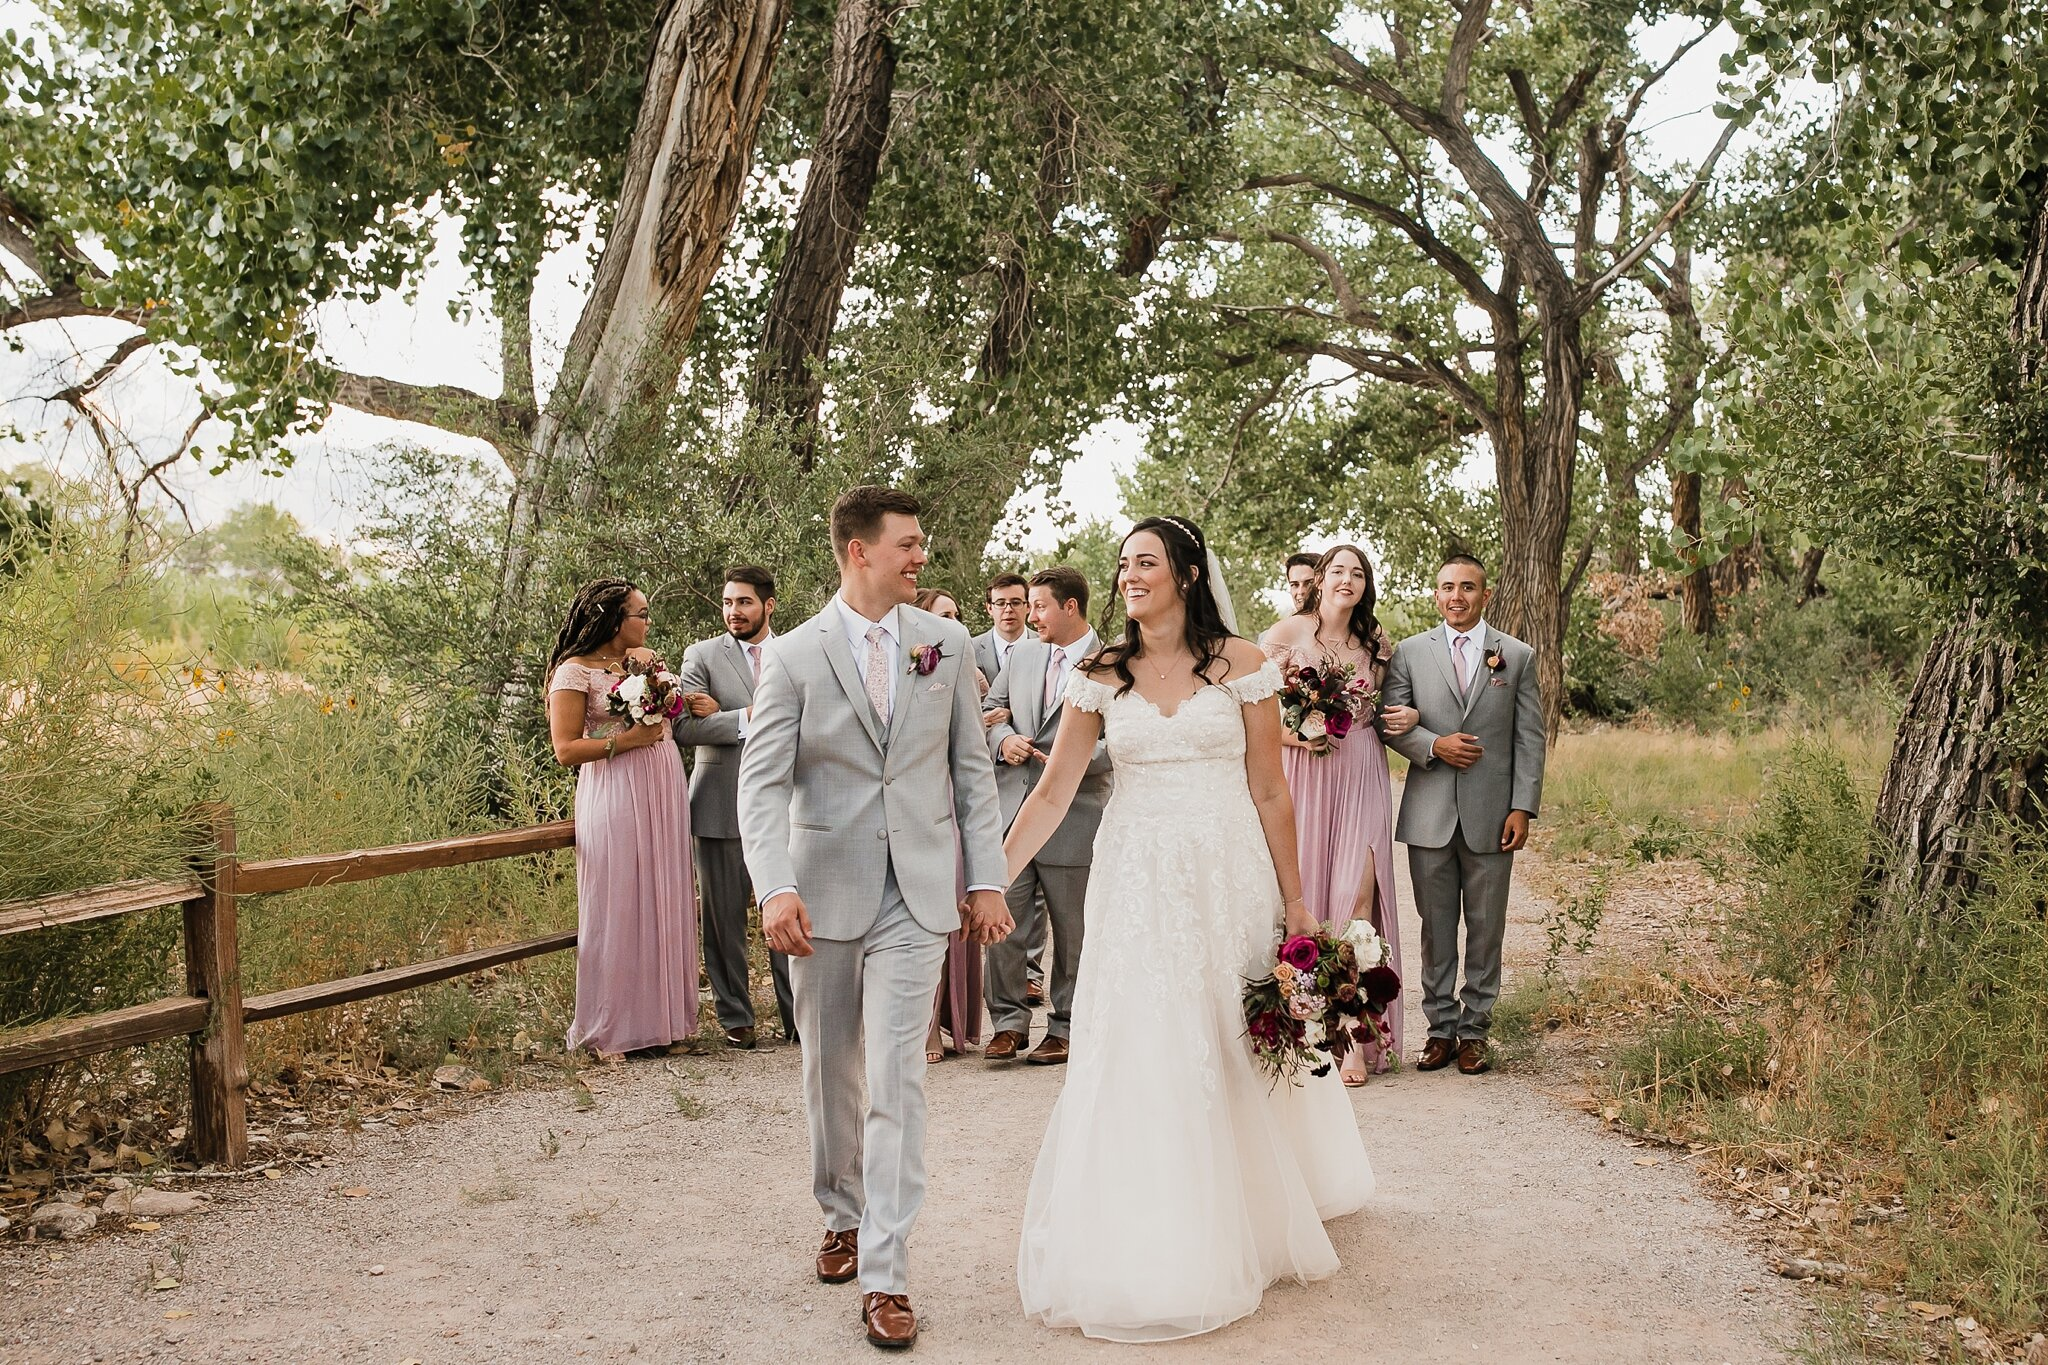 Alicia+lucia+photography+-+albuquerque+wedding+photographer+-+santa+fe+wedding+photography+-+new+mexico+wedding+photographer+-+new+mexico+wedding+-+wedding+-+bridal+gown+-+wedding+gown+-+ballgown+wedding+gown+-+ballgown+bridal+gown_0074.jpg